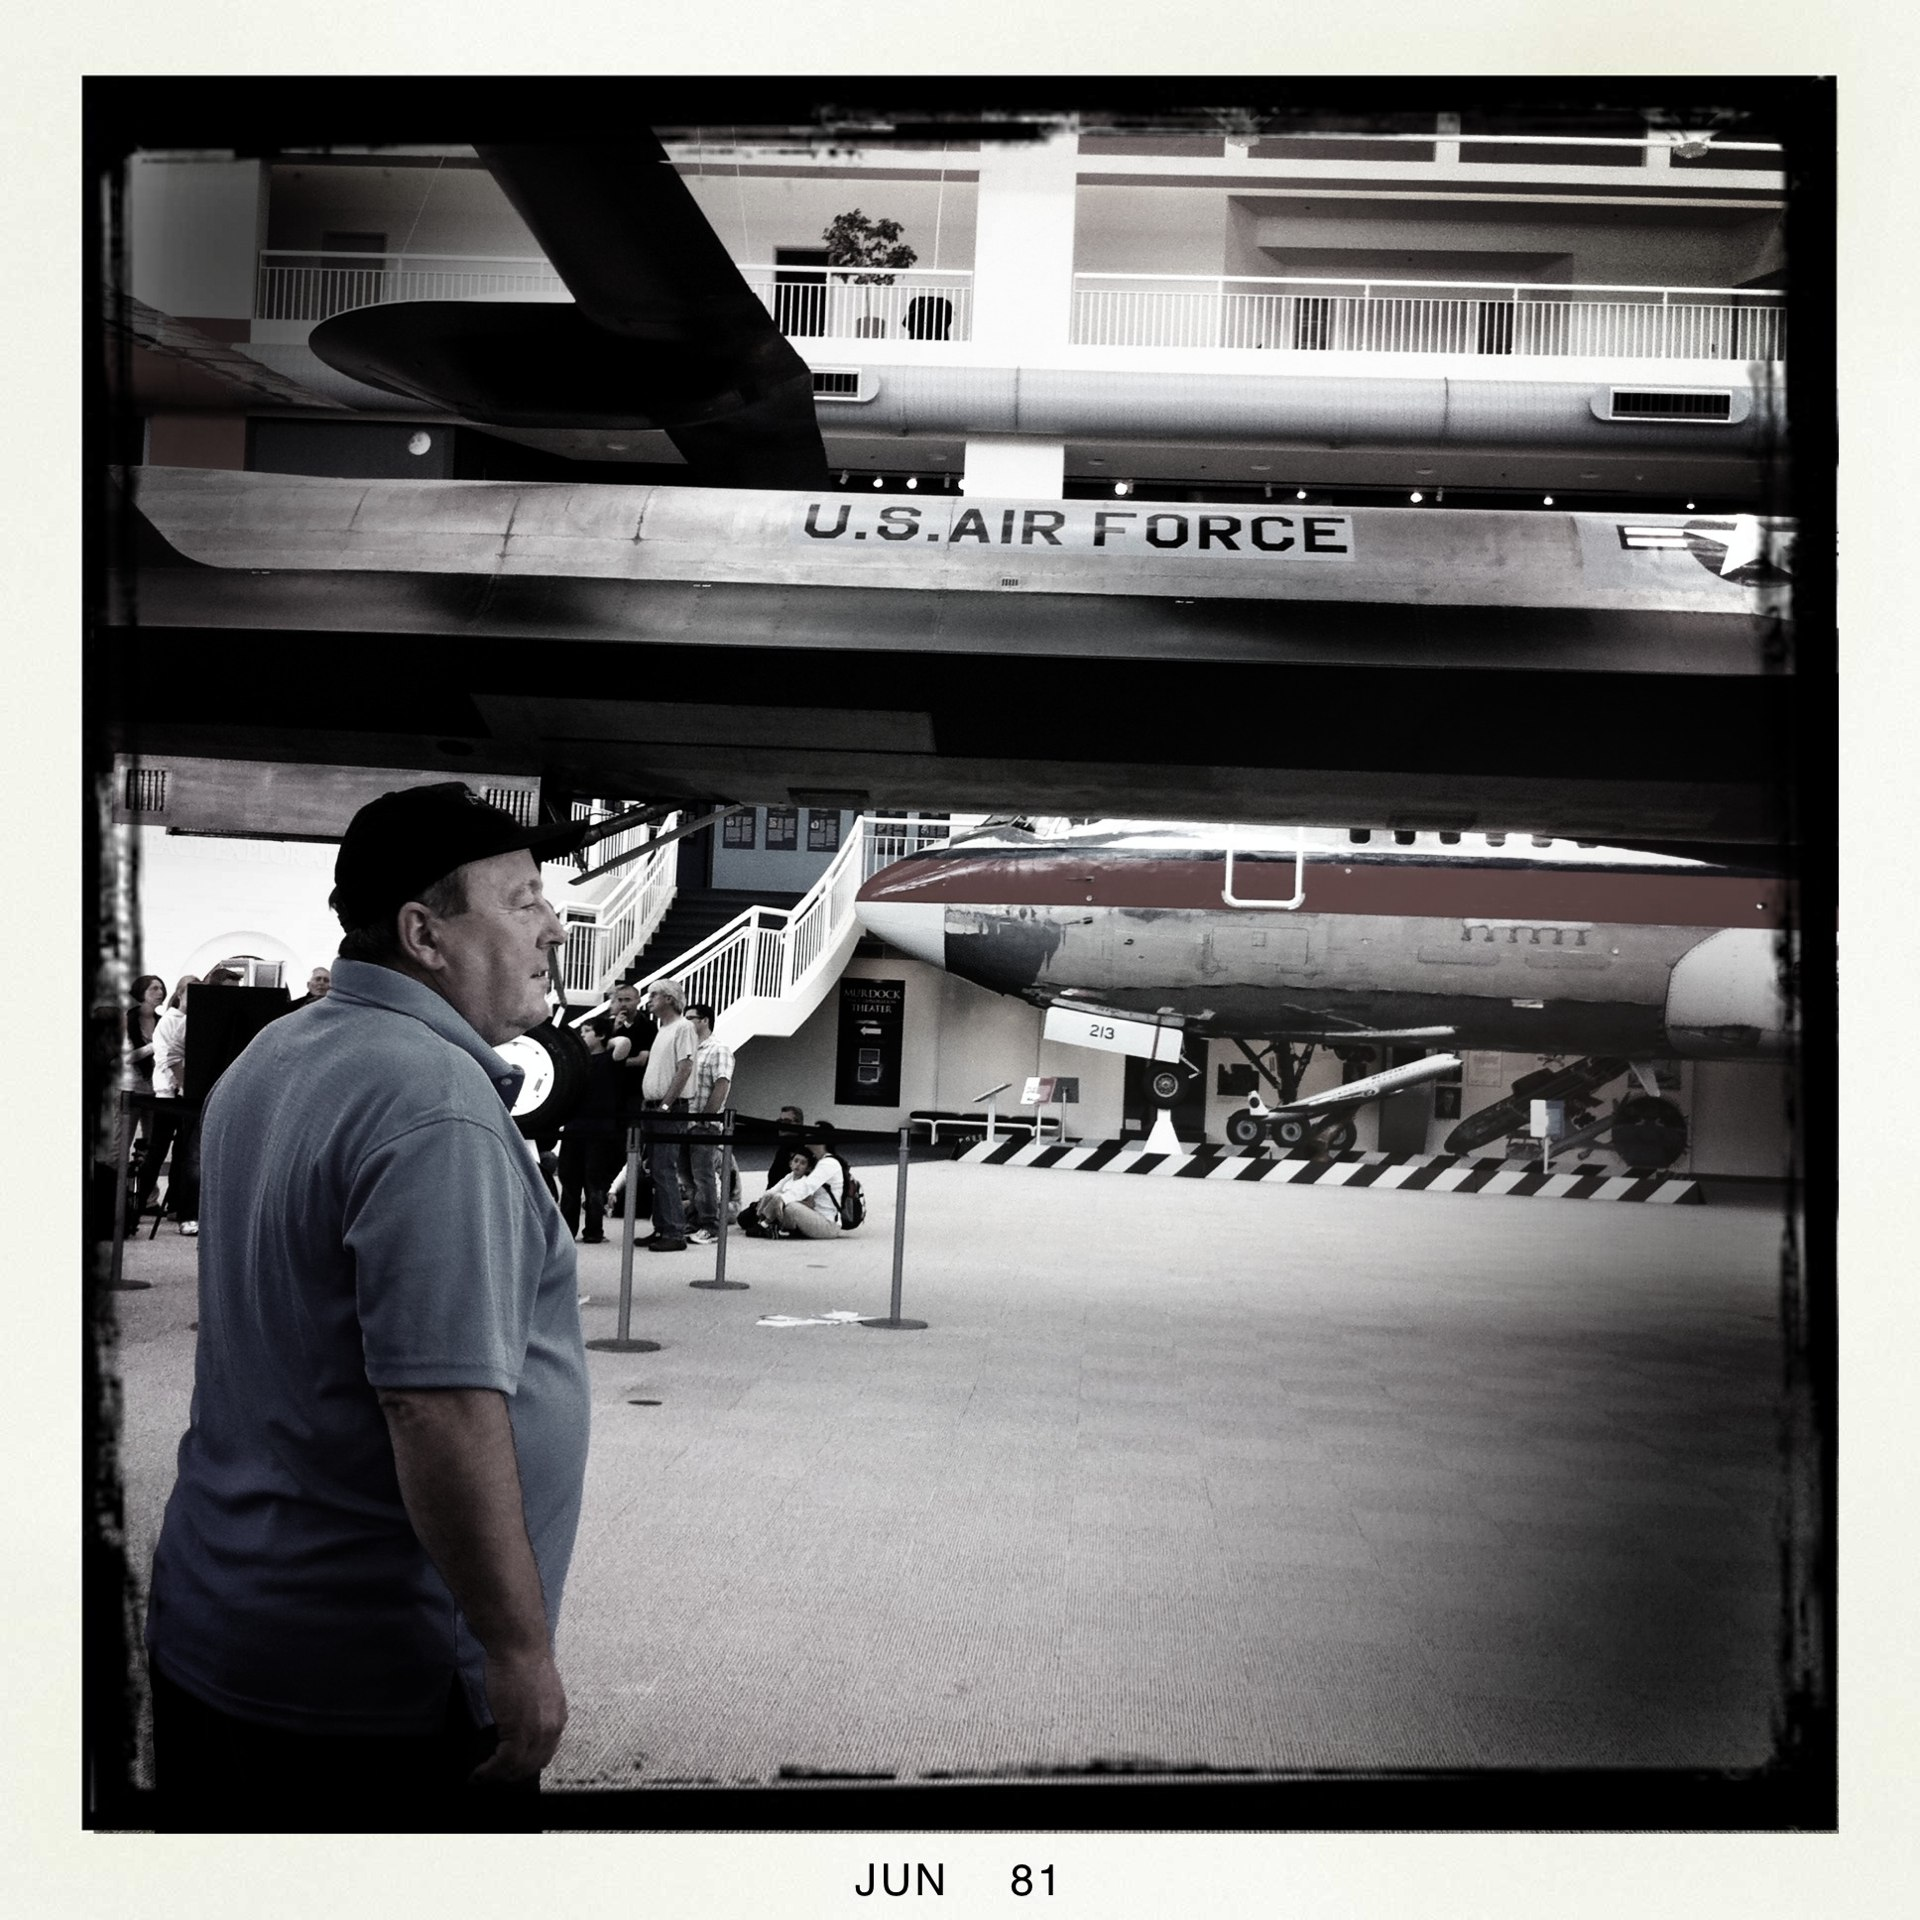 Made a trip to the Museum of Flight where we got to run around on Air Force One... the older one, hehe. Crazy how much has changed with design.